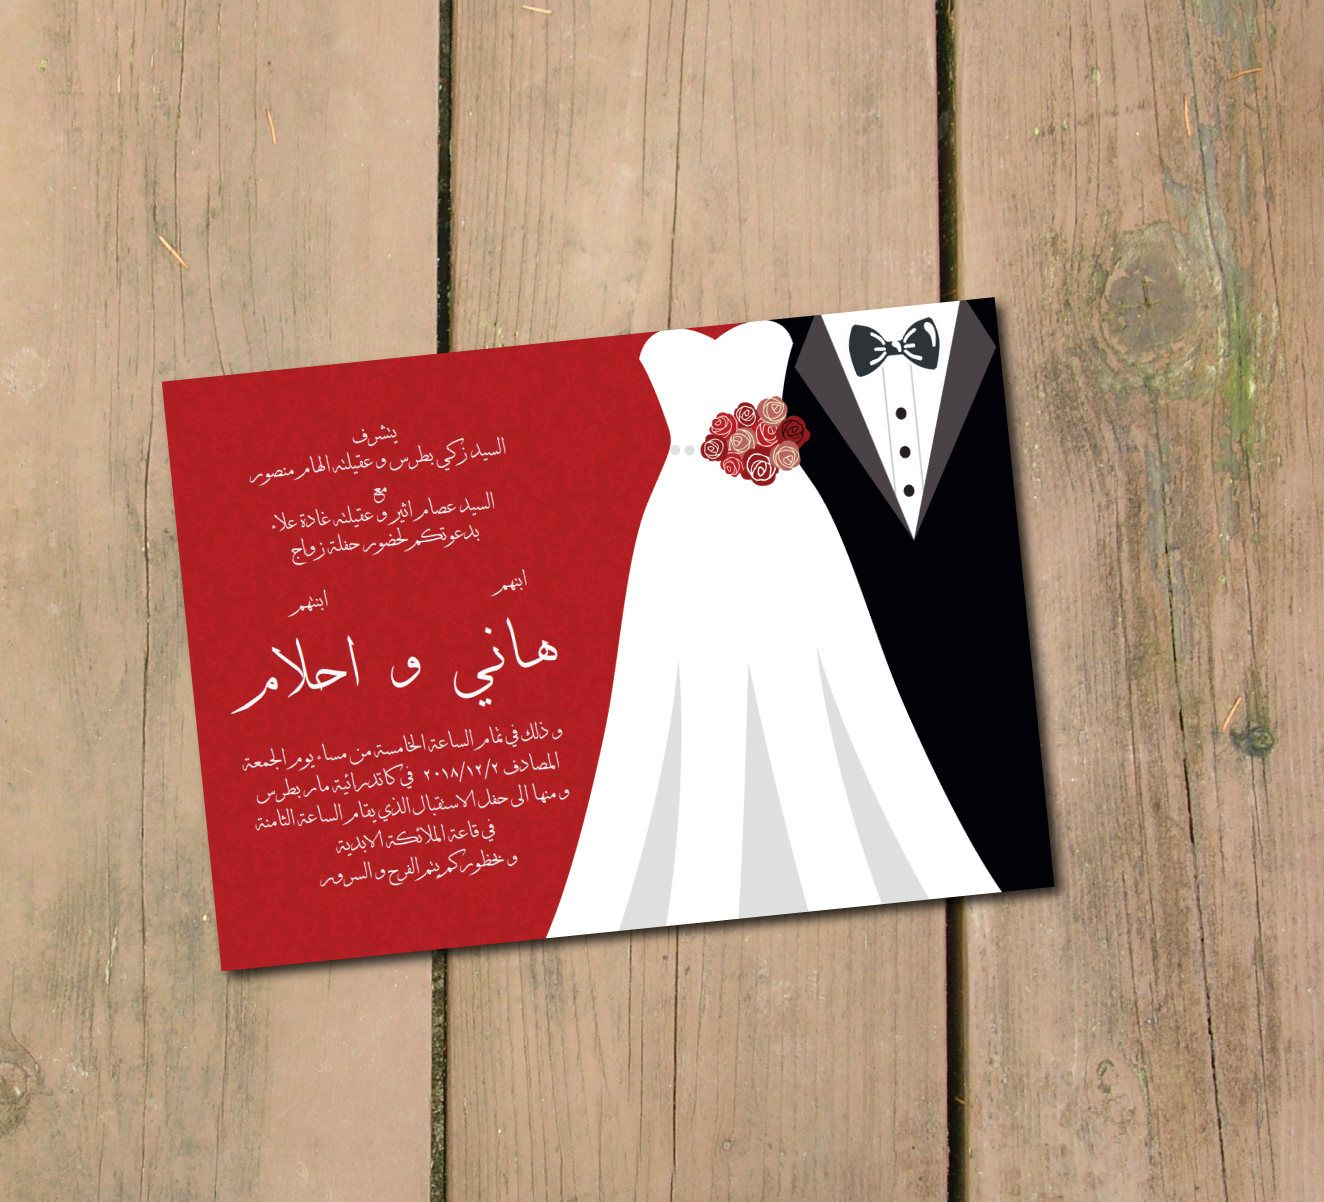 Arabic Wedding Invitation Printable Wedding Invitation Template Arabic Wedding Invitation Customized حفل زو Arab Wedding Wedding Invitations Wedding Engagement